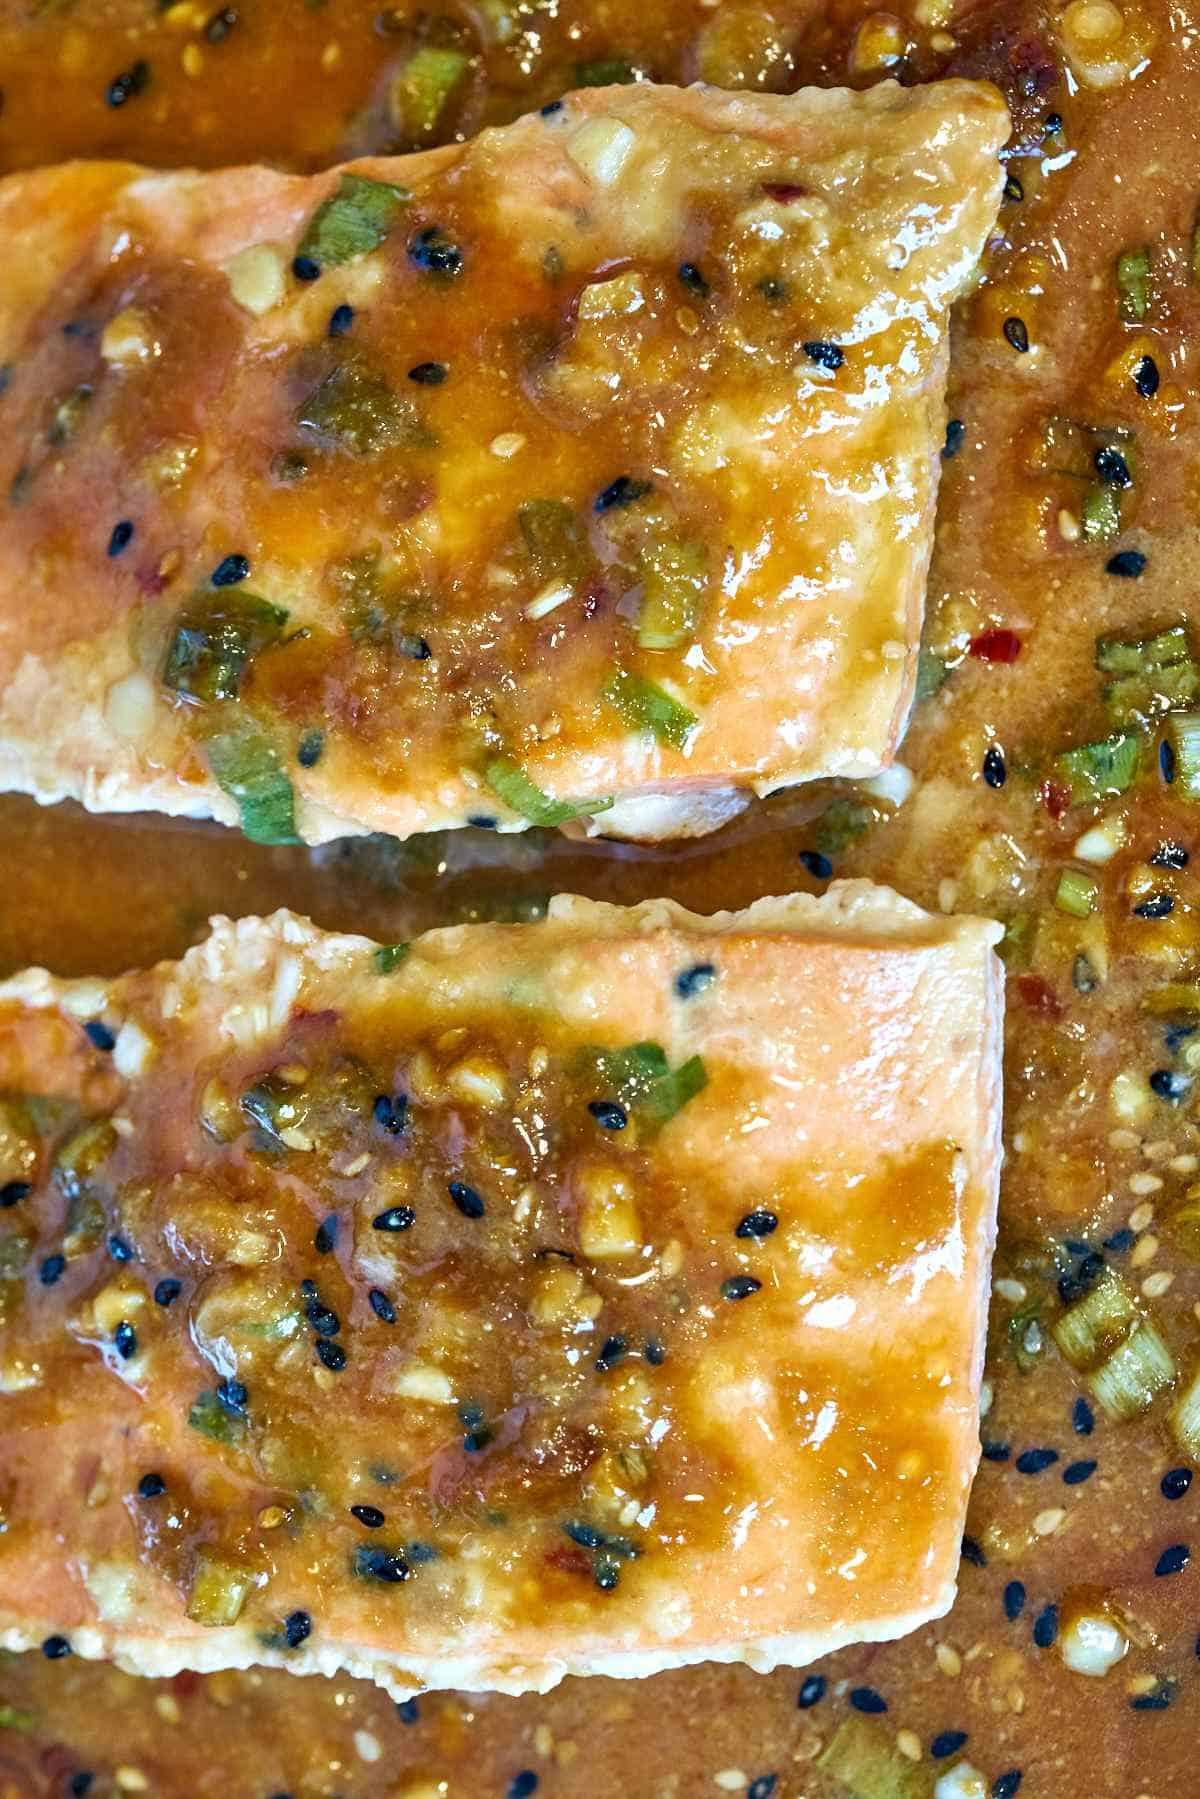 Cooked salmon on a baking sheet.